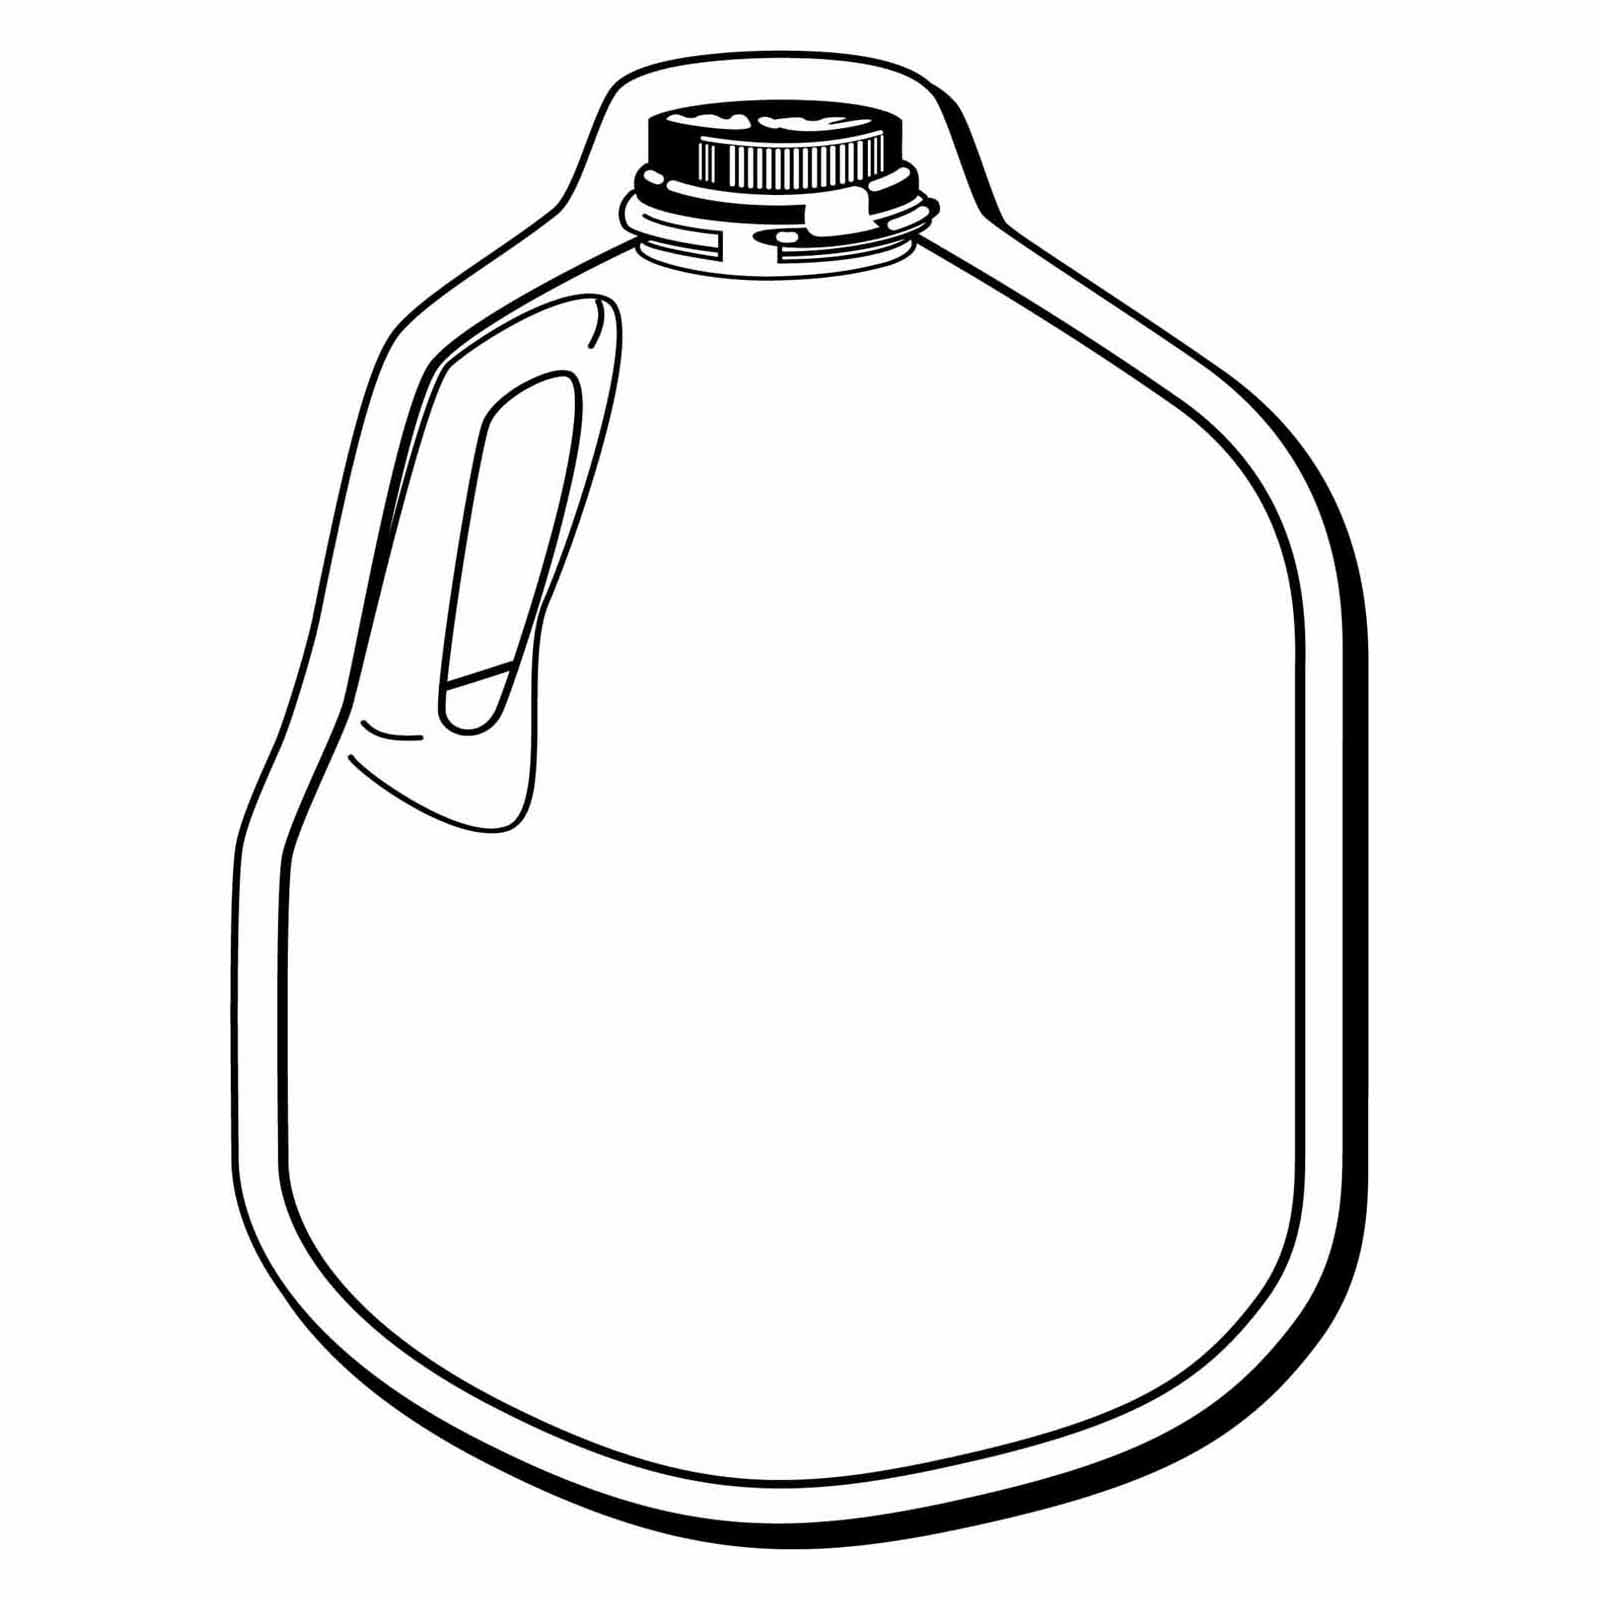 Free Cliparts Gallon Jug, Download Free Clip Art, Free Clip Art on.